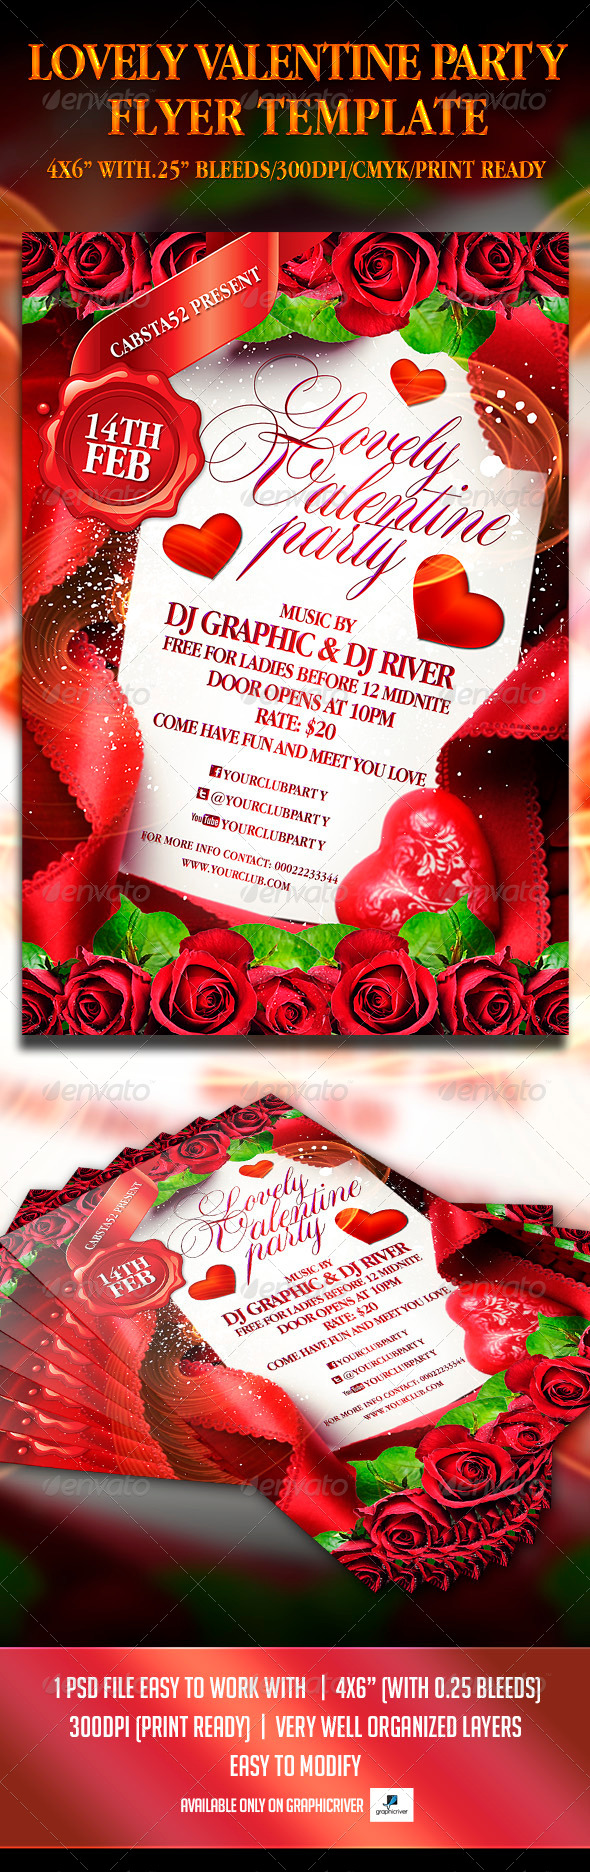 GraphicRiver Lovely Valentine Party Flyer Template 6535959